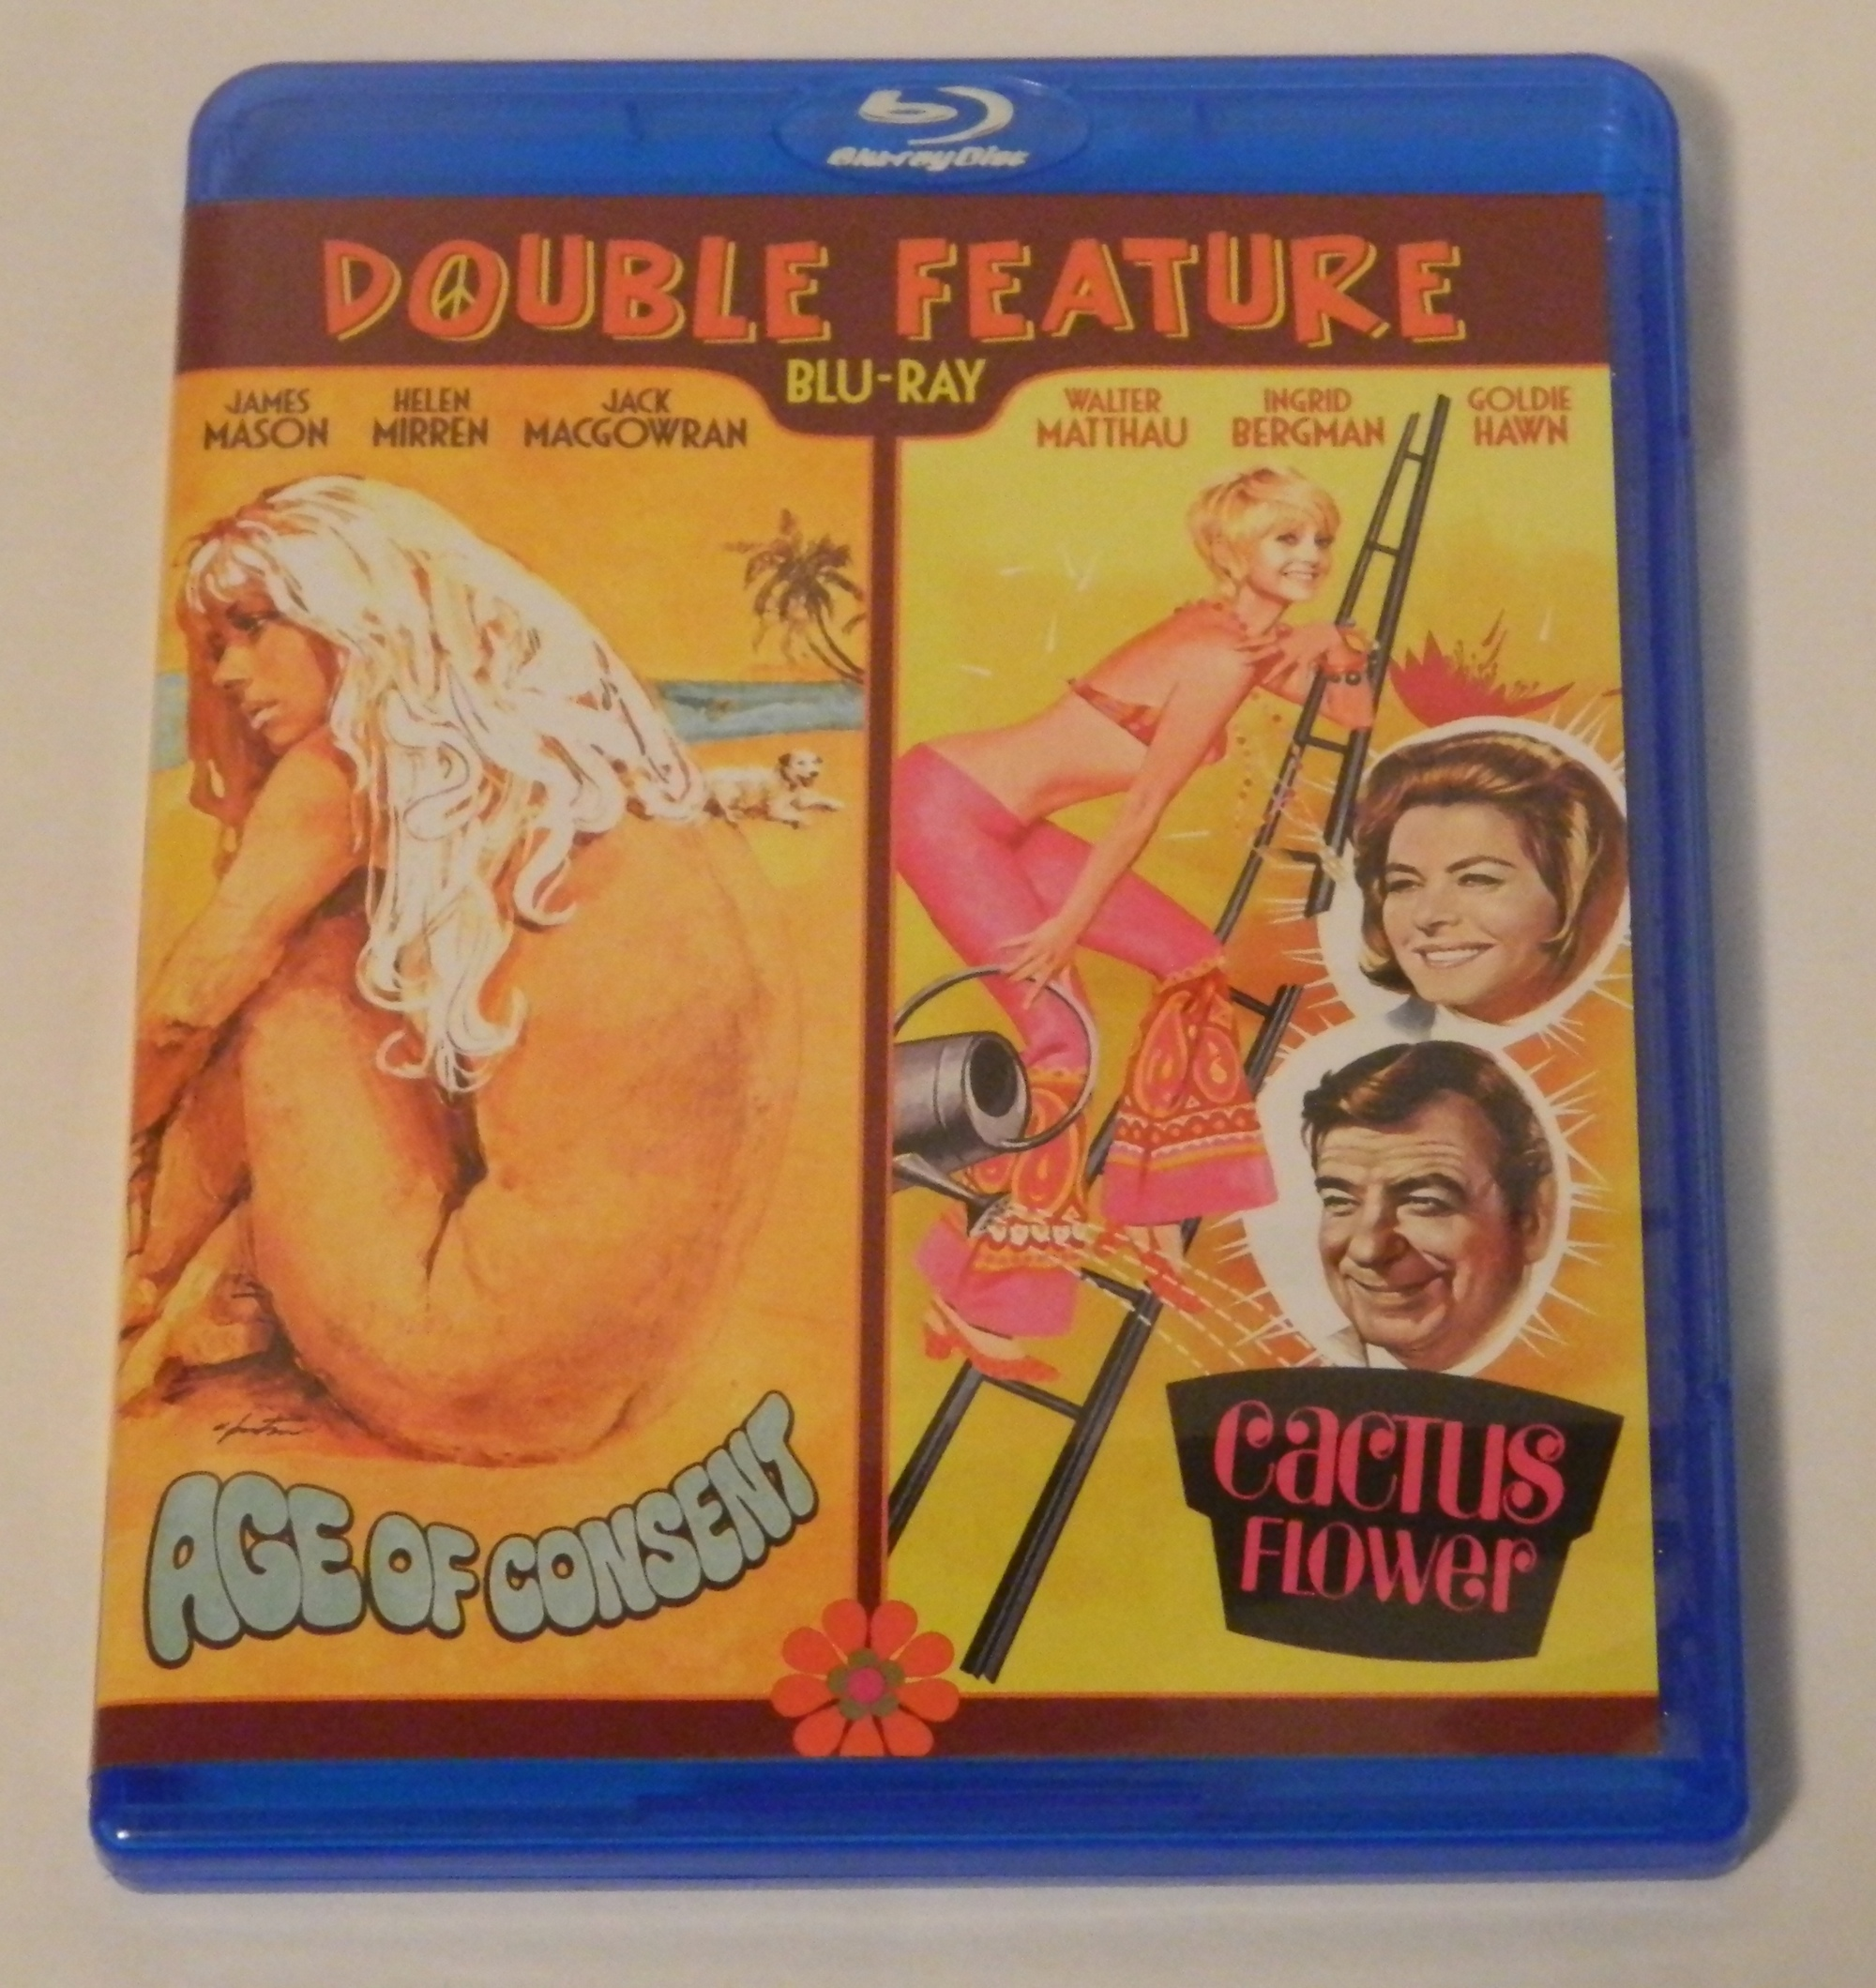 Age of Consent Cactus Flower Double Feature Blu-ray